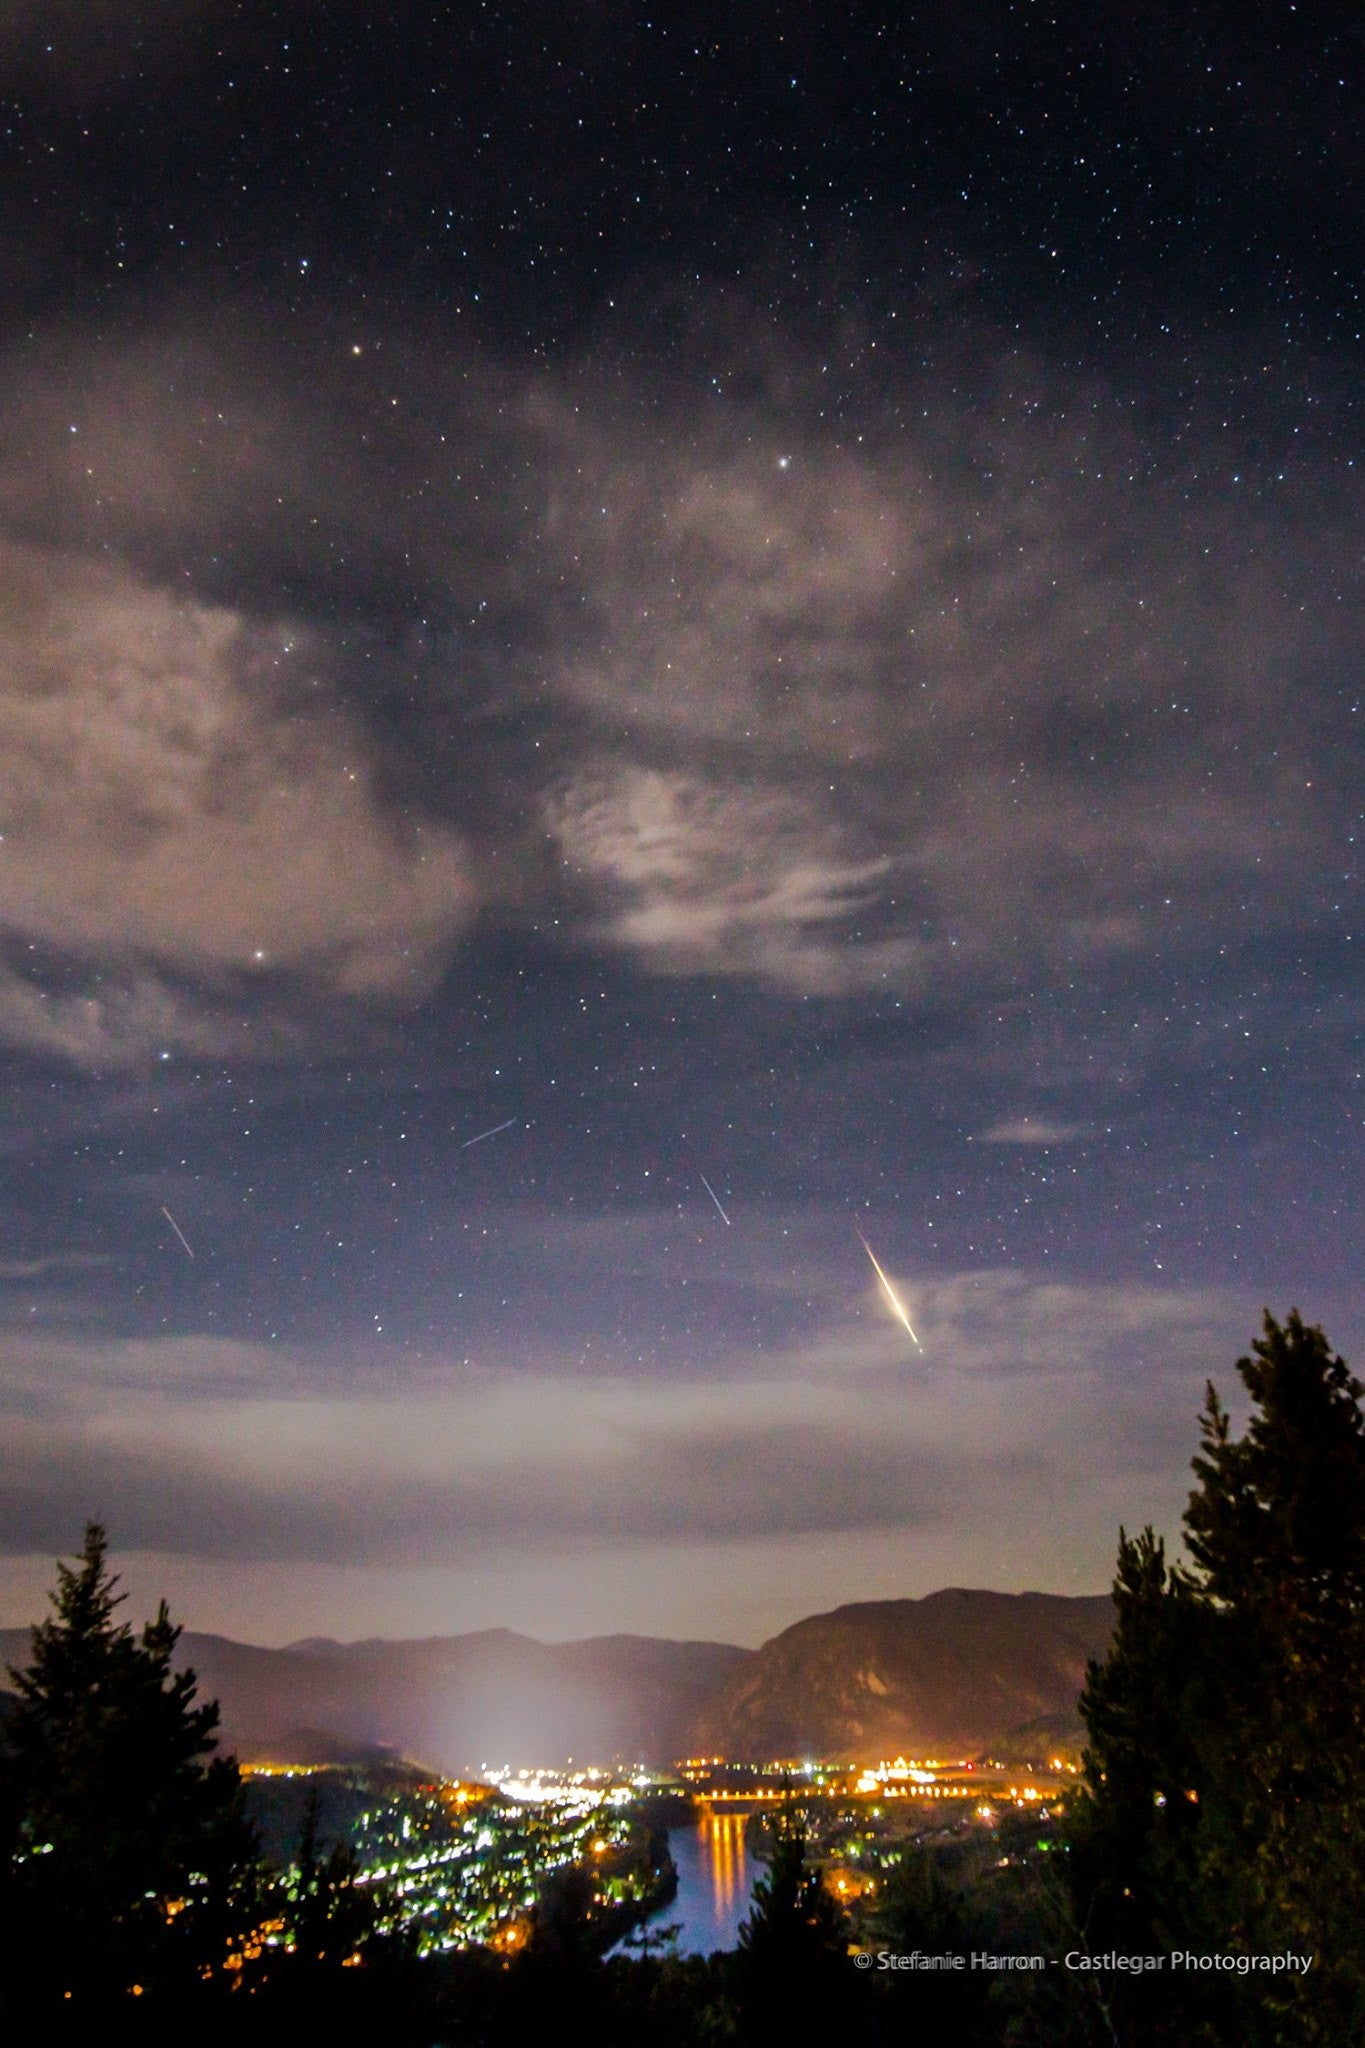 Perseid Meteor Shower and Recent Astrophotography Work